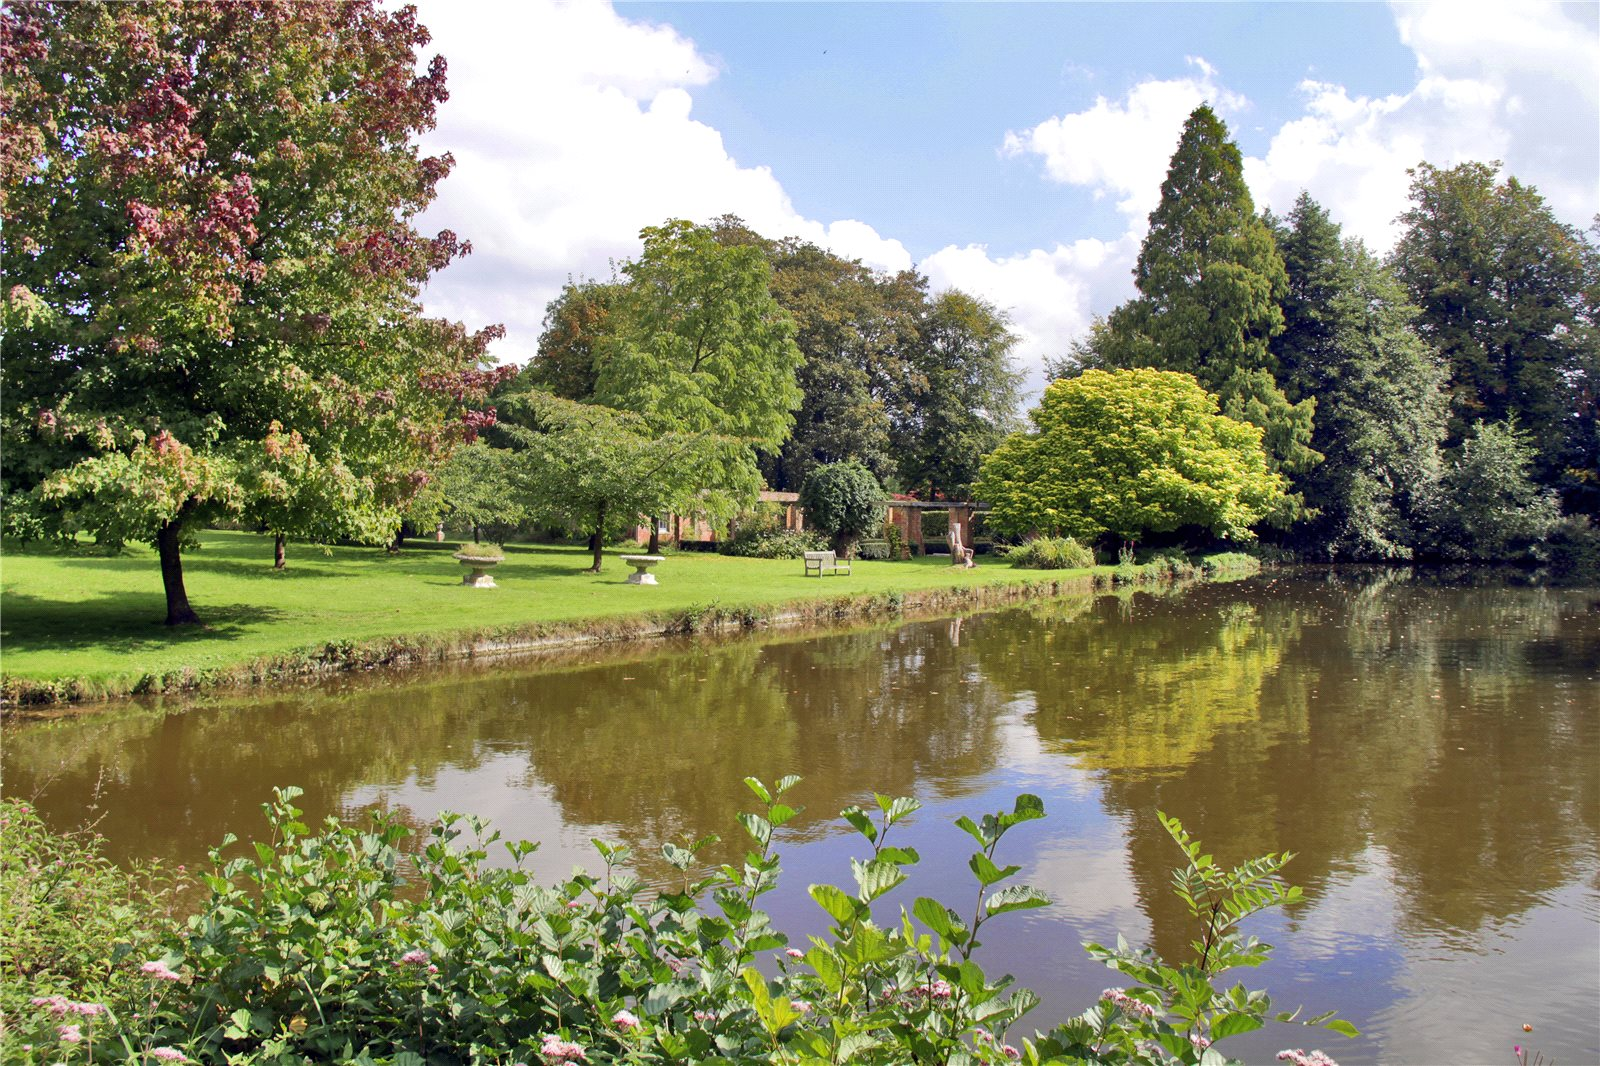 Single Family Home for Sale at Boughton Road, Sandway, Maidstone, Kent, ME17 Maidstone, England